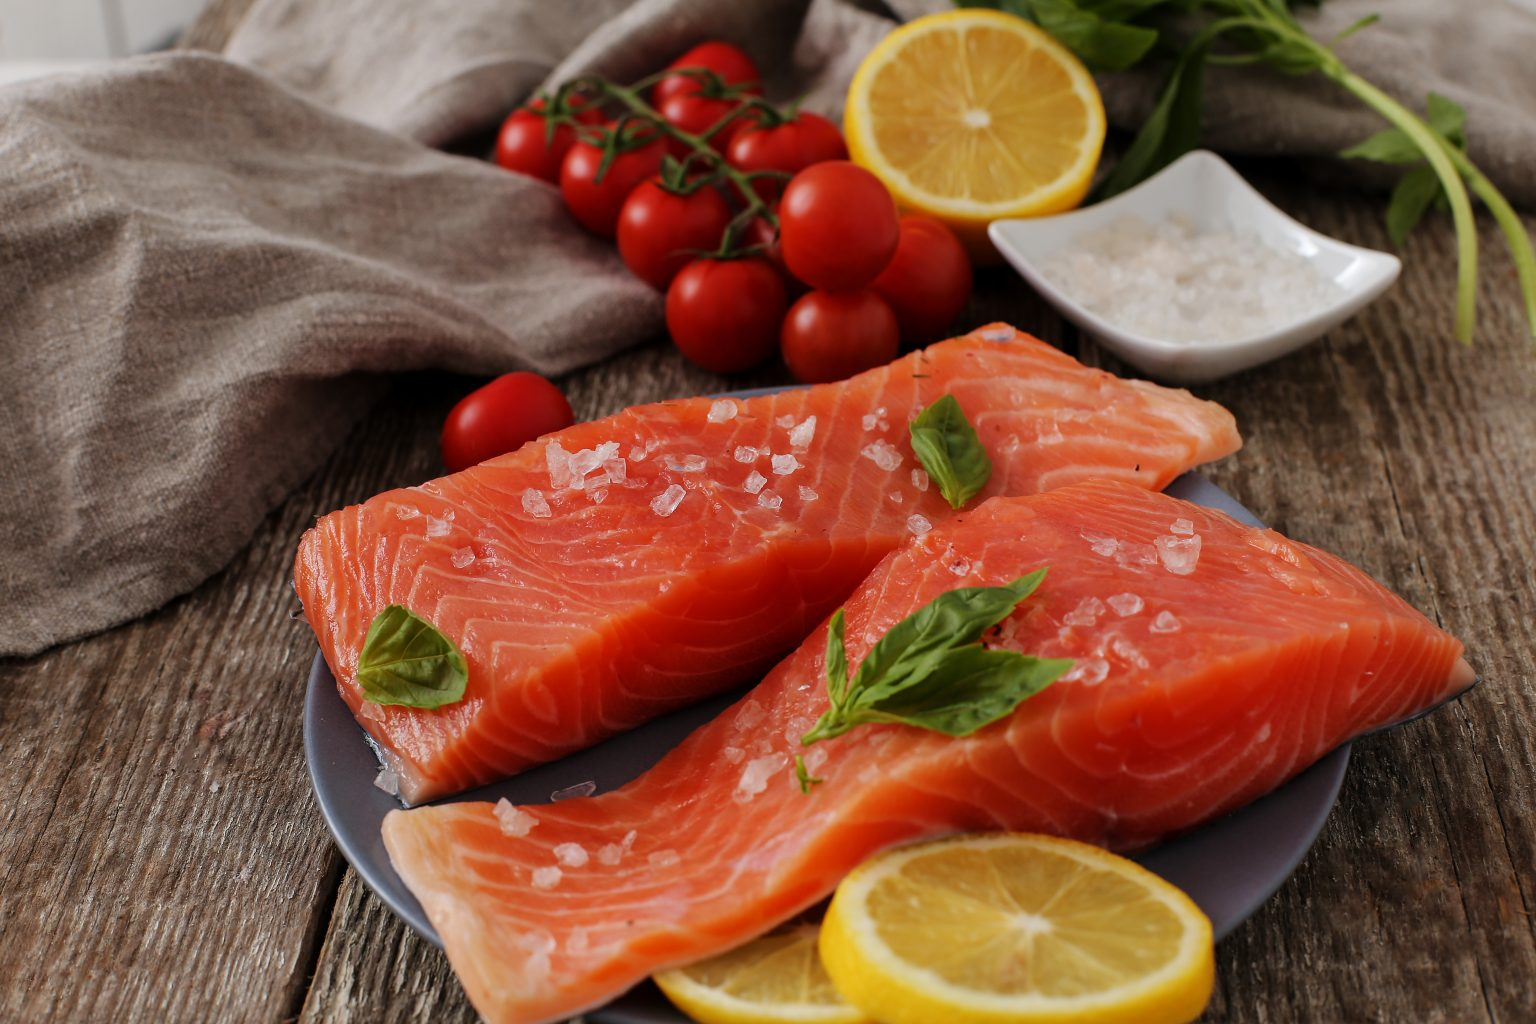 Fish like salmon to assist in hair growth and protect your hair from thinning.